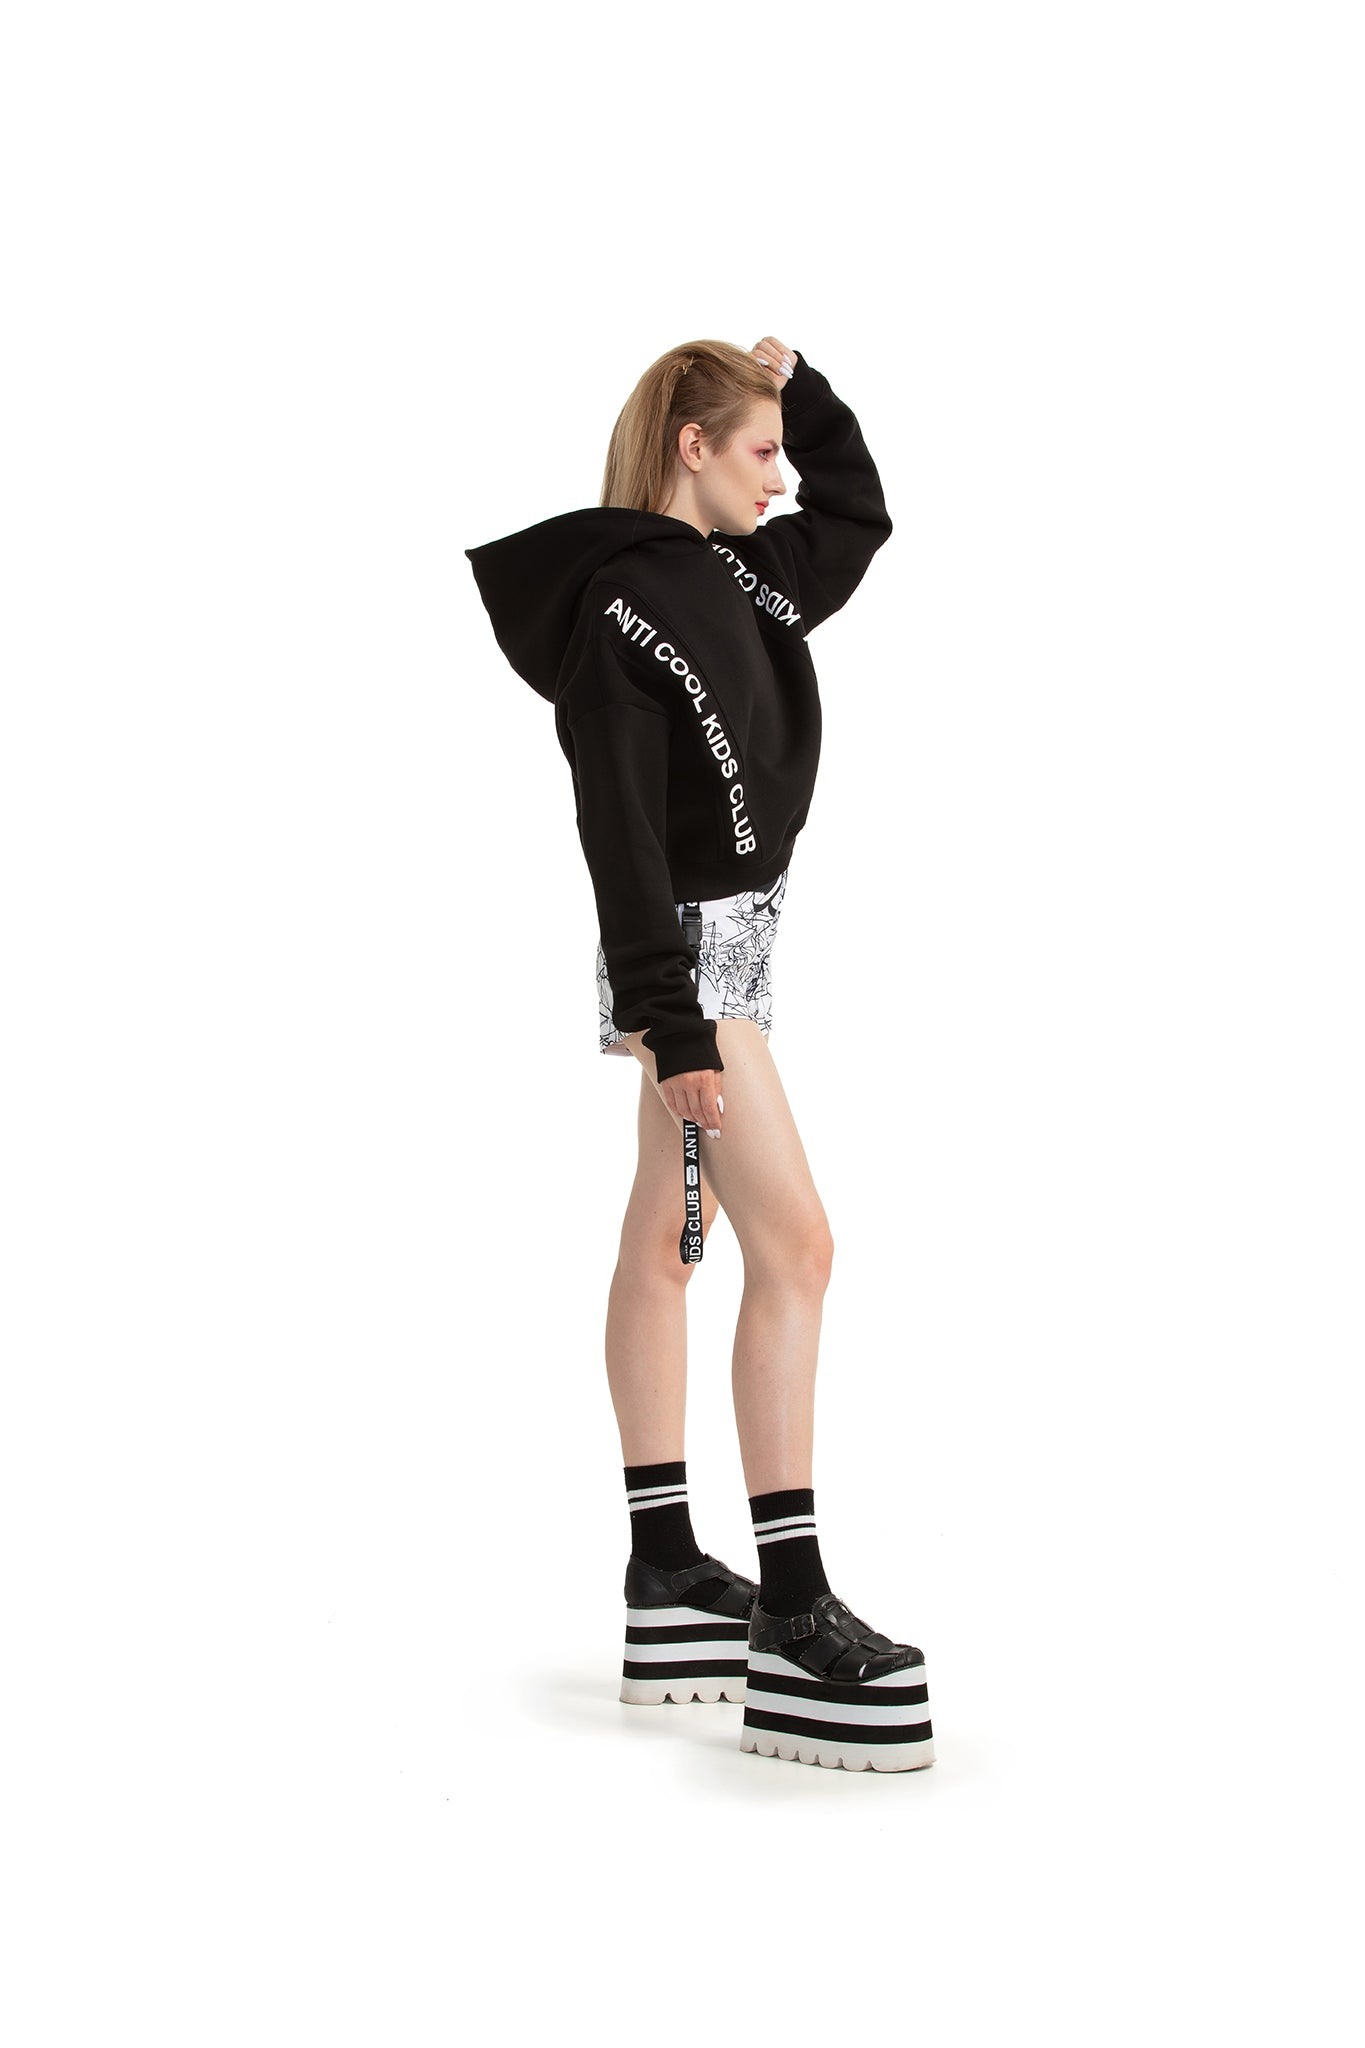 Anti Cool Kids Club [Black] sweatshirt